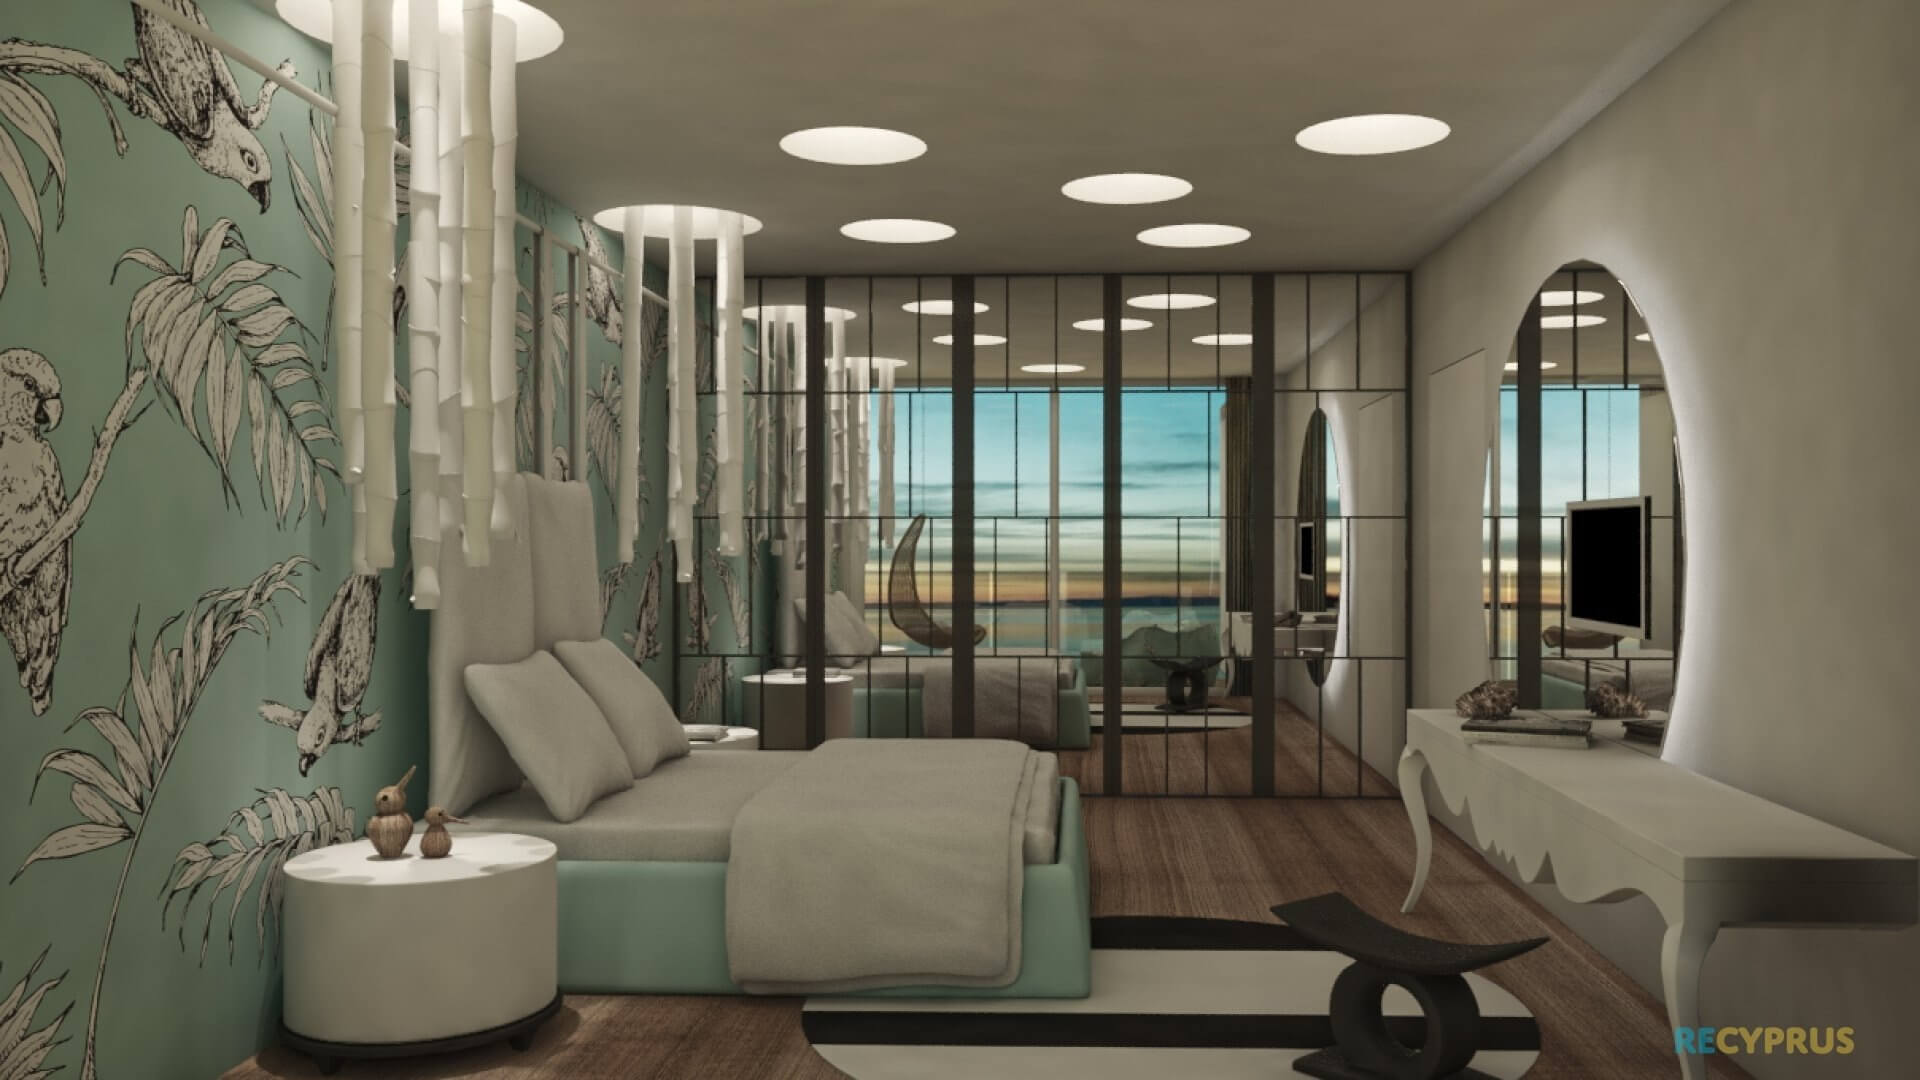 Apartment for sale Ayia Thekla Famagusta Cyprus 6 3477